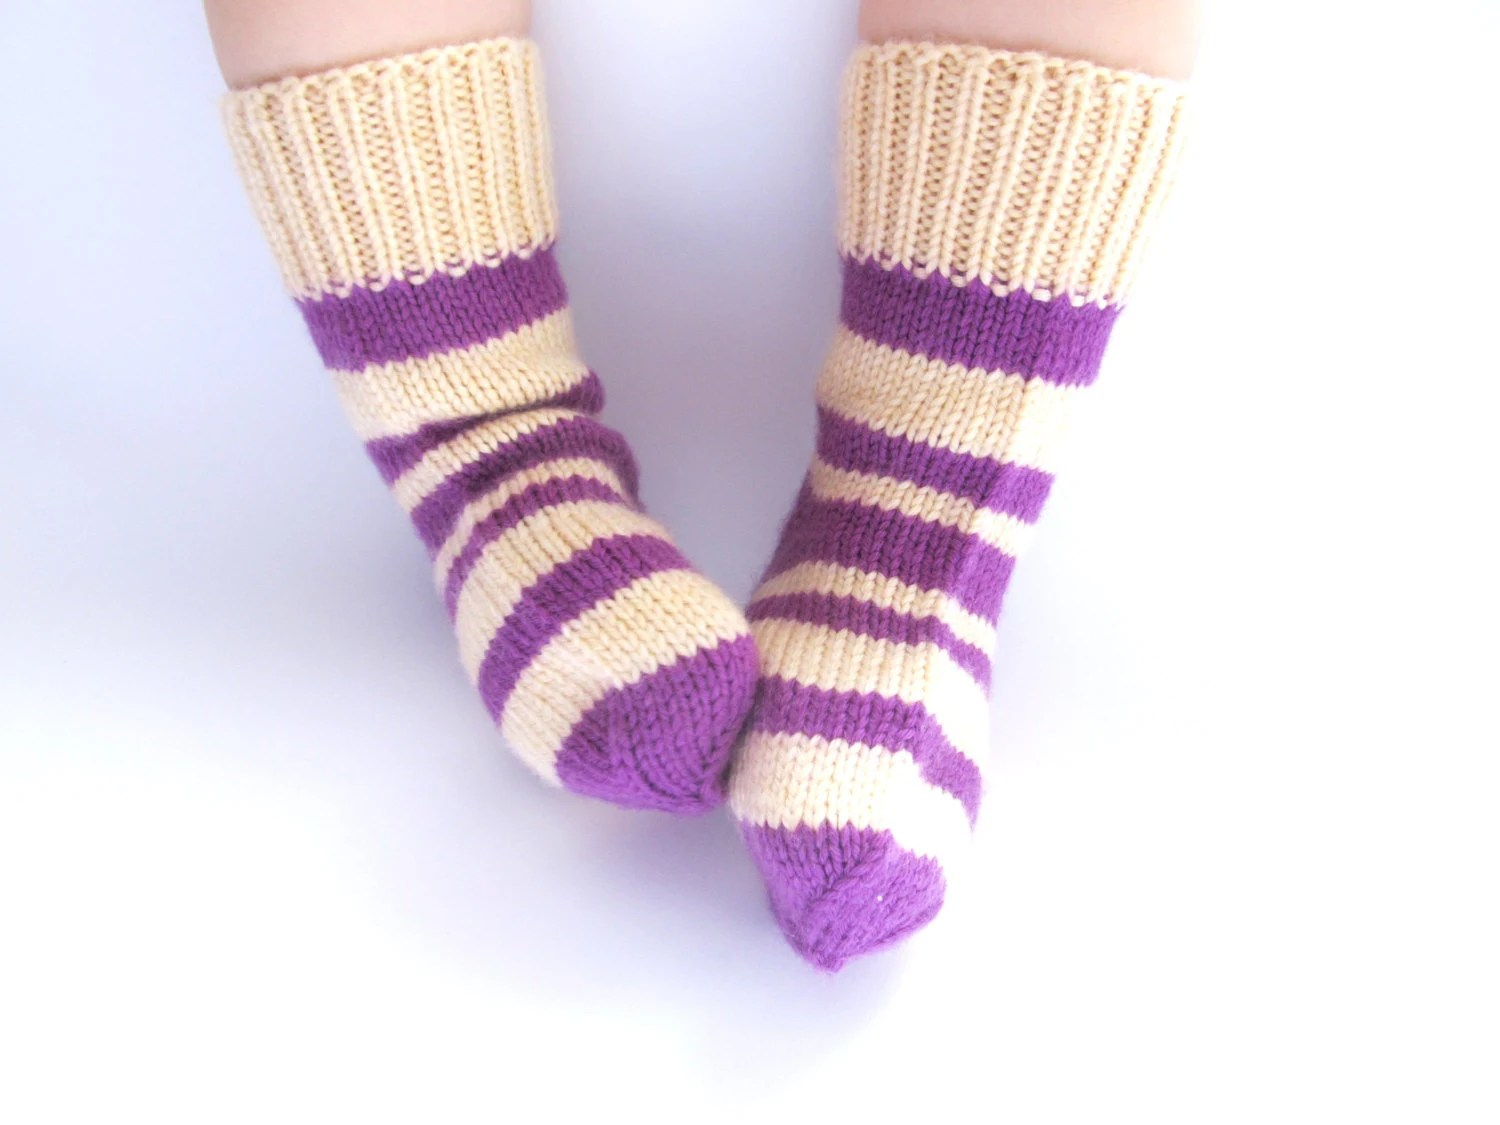 Baby Socks from Merino Wool Purple Colour - Knitted Super Soft Socks for Kids - Wool Baby Socks - Gift for Children -  Made to Order - Junikid